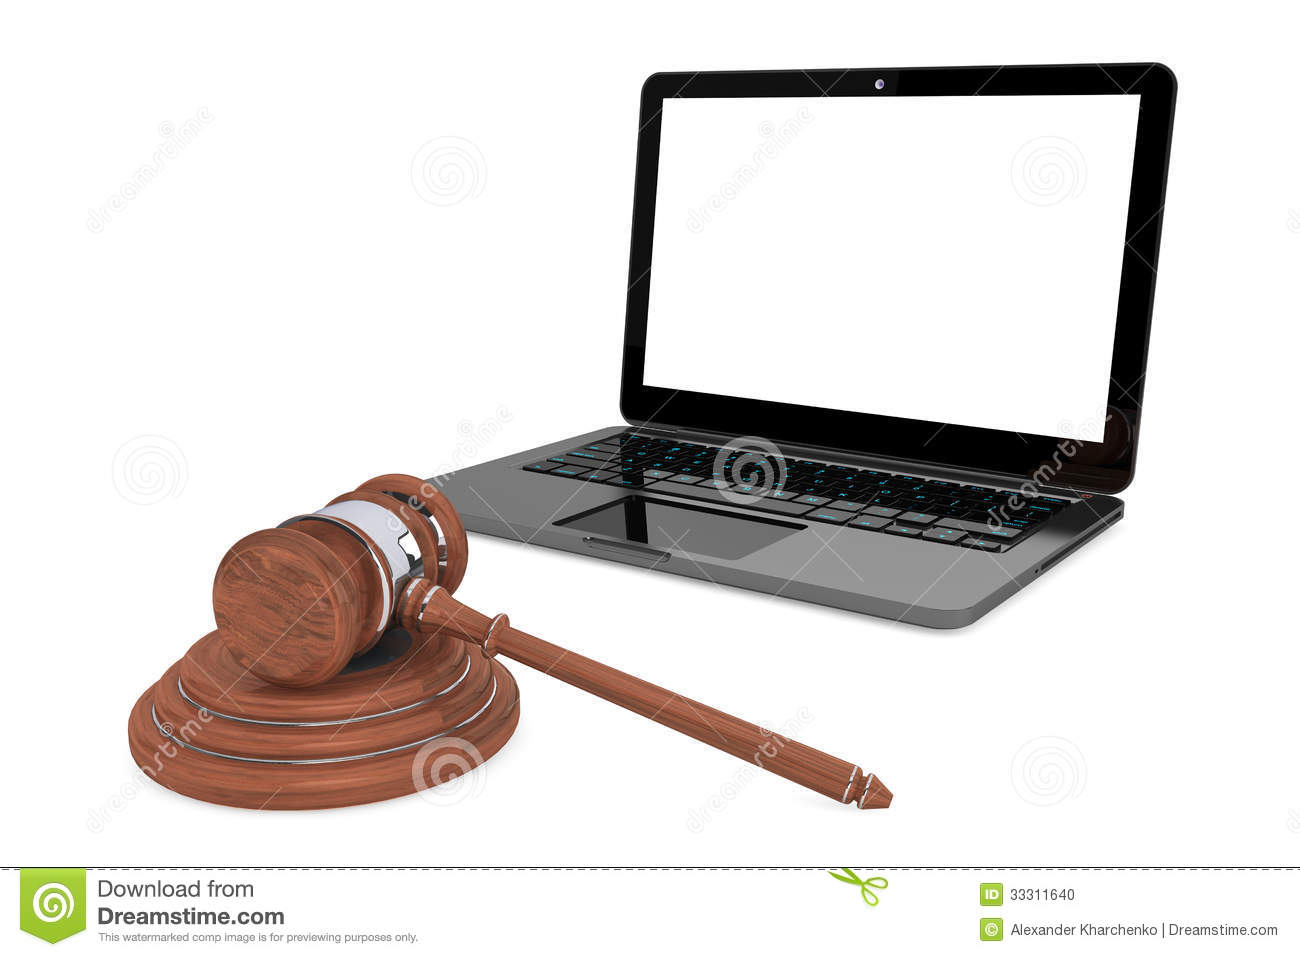 Law best computers for business majors